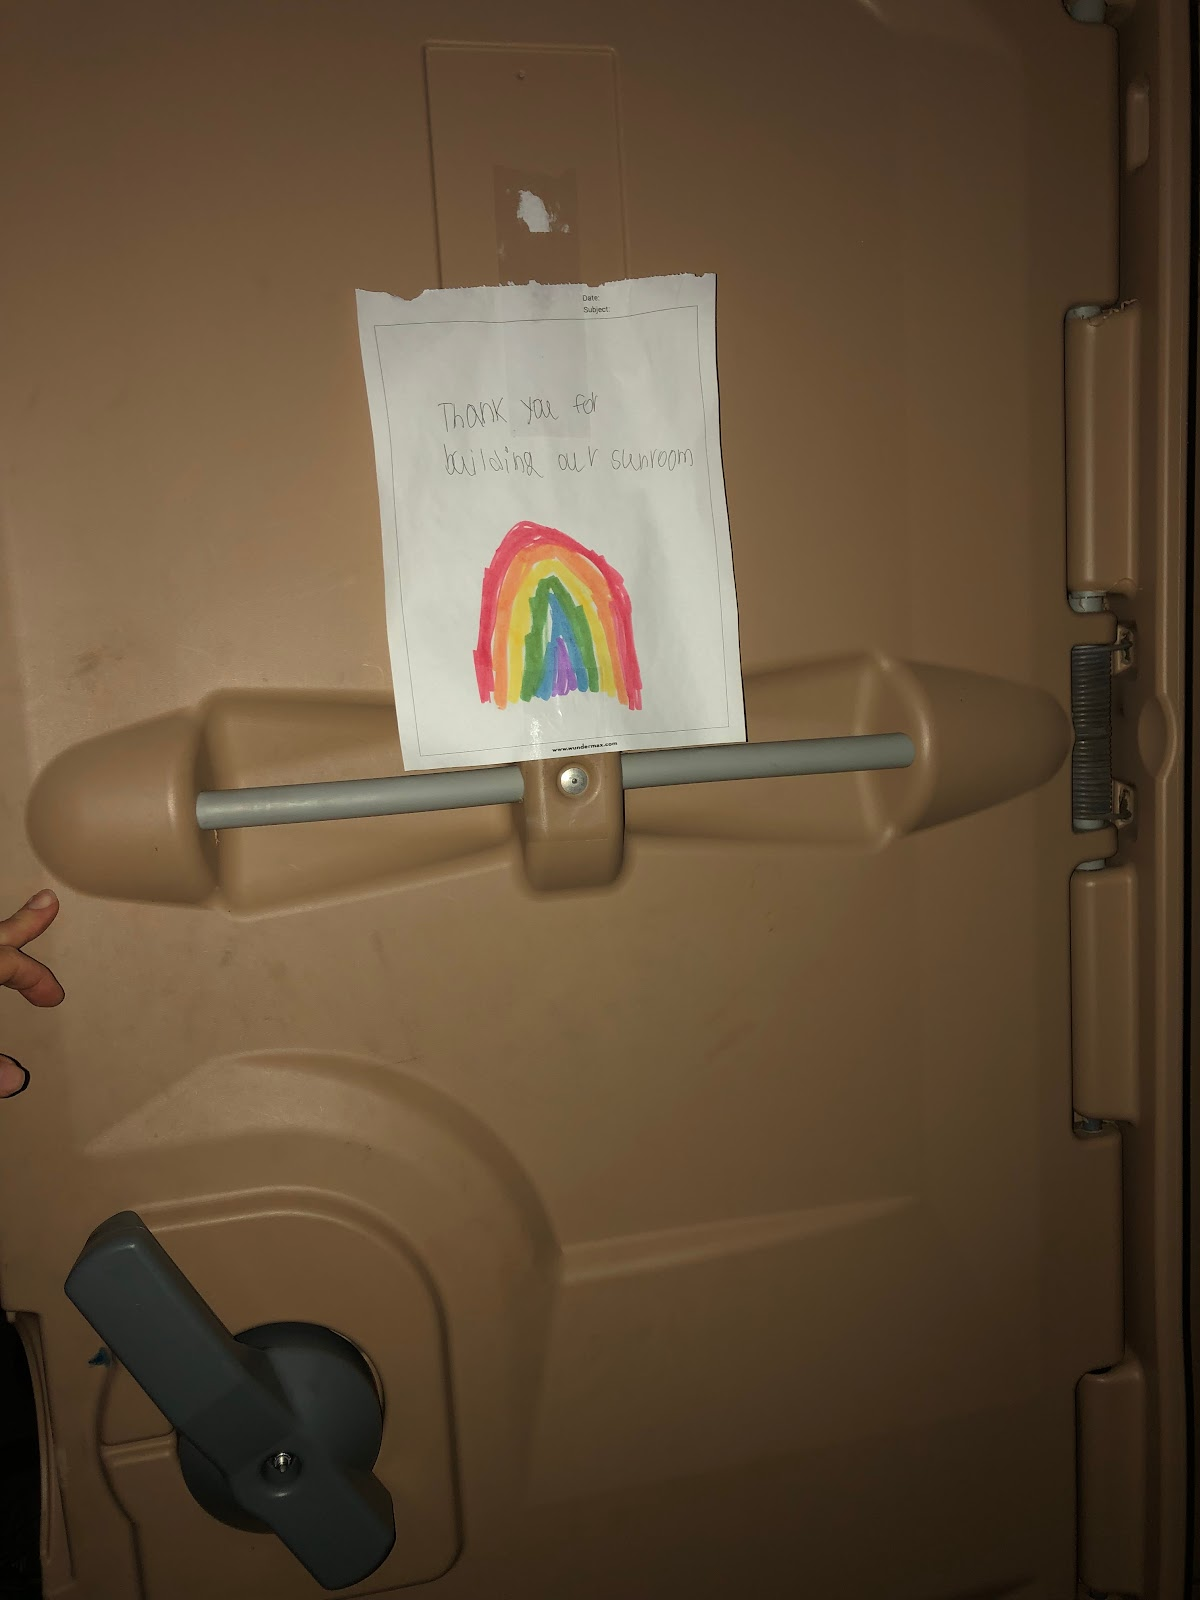 cute note drawing rainbow from little girl placed in porta potty to thank workers for building home